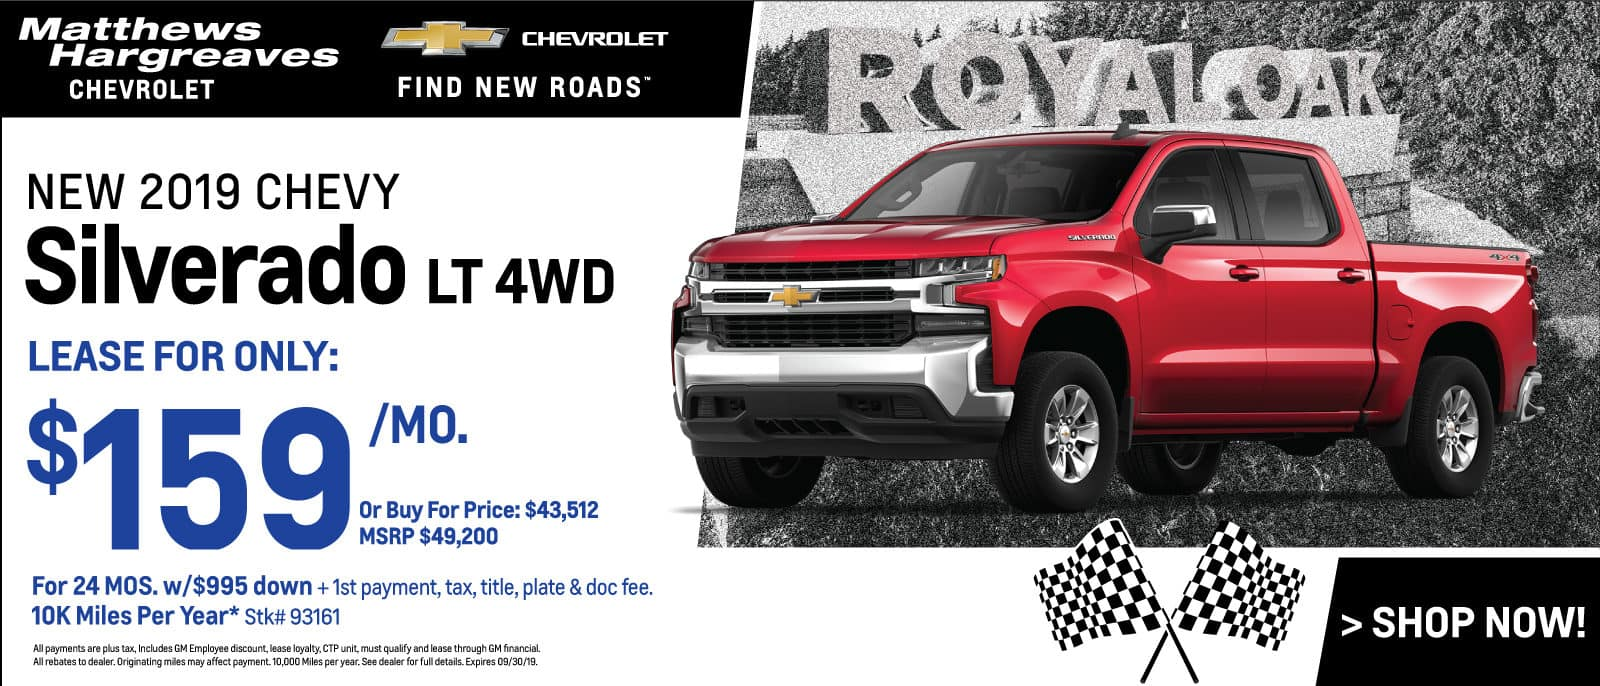 Matthews-Hargreaves Chevrolet Royal Oak, MI | New & Used Cars